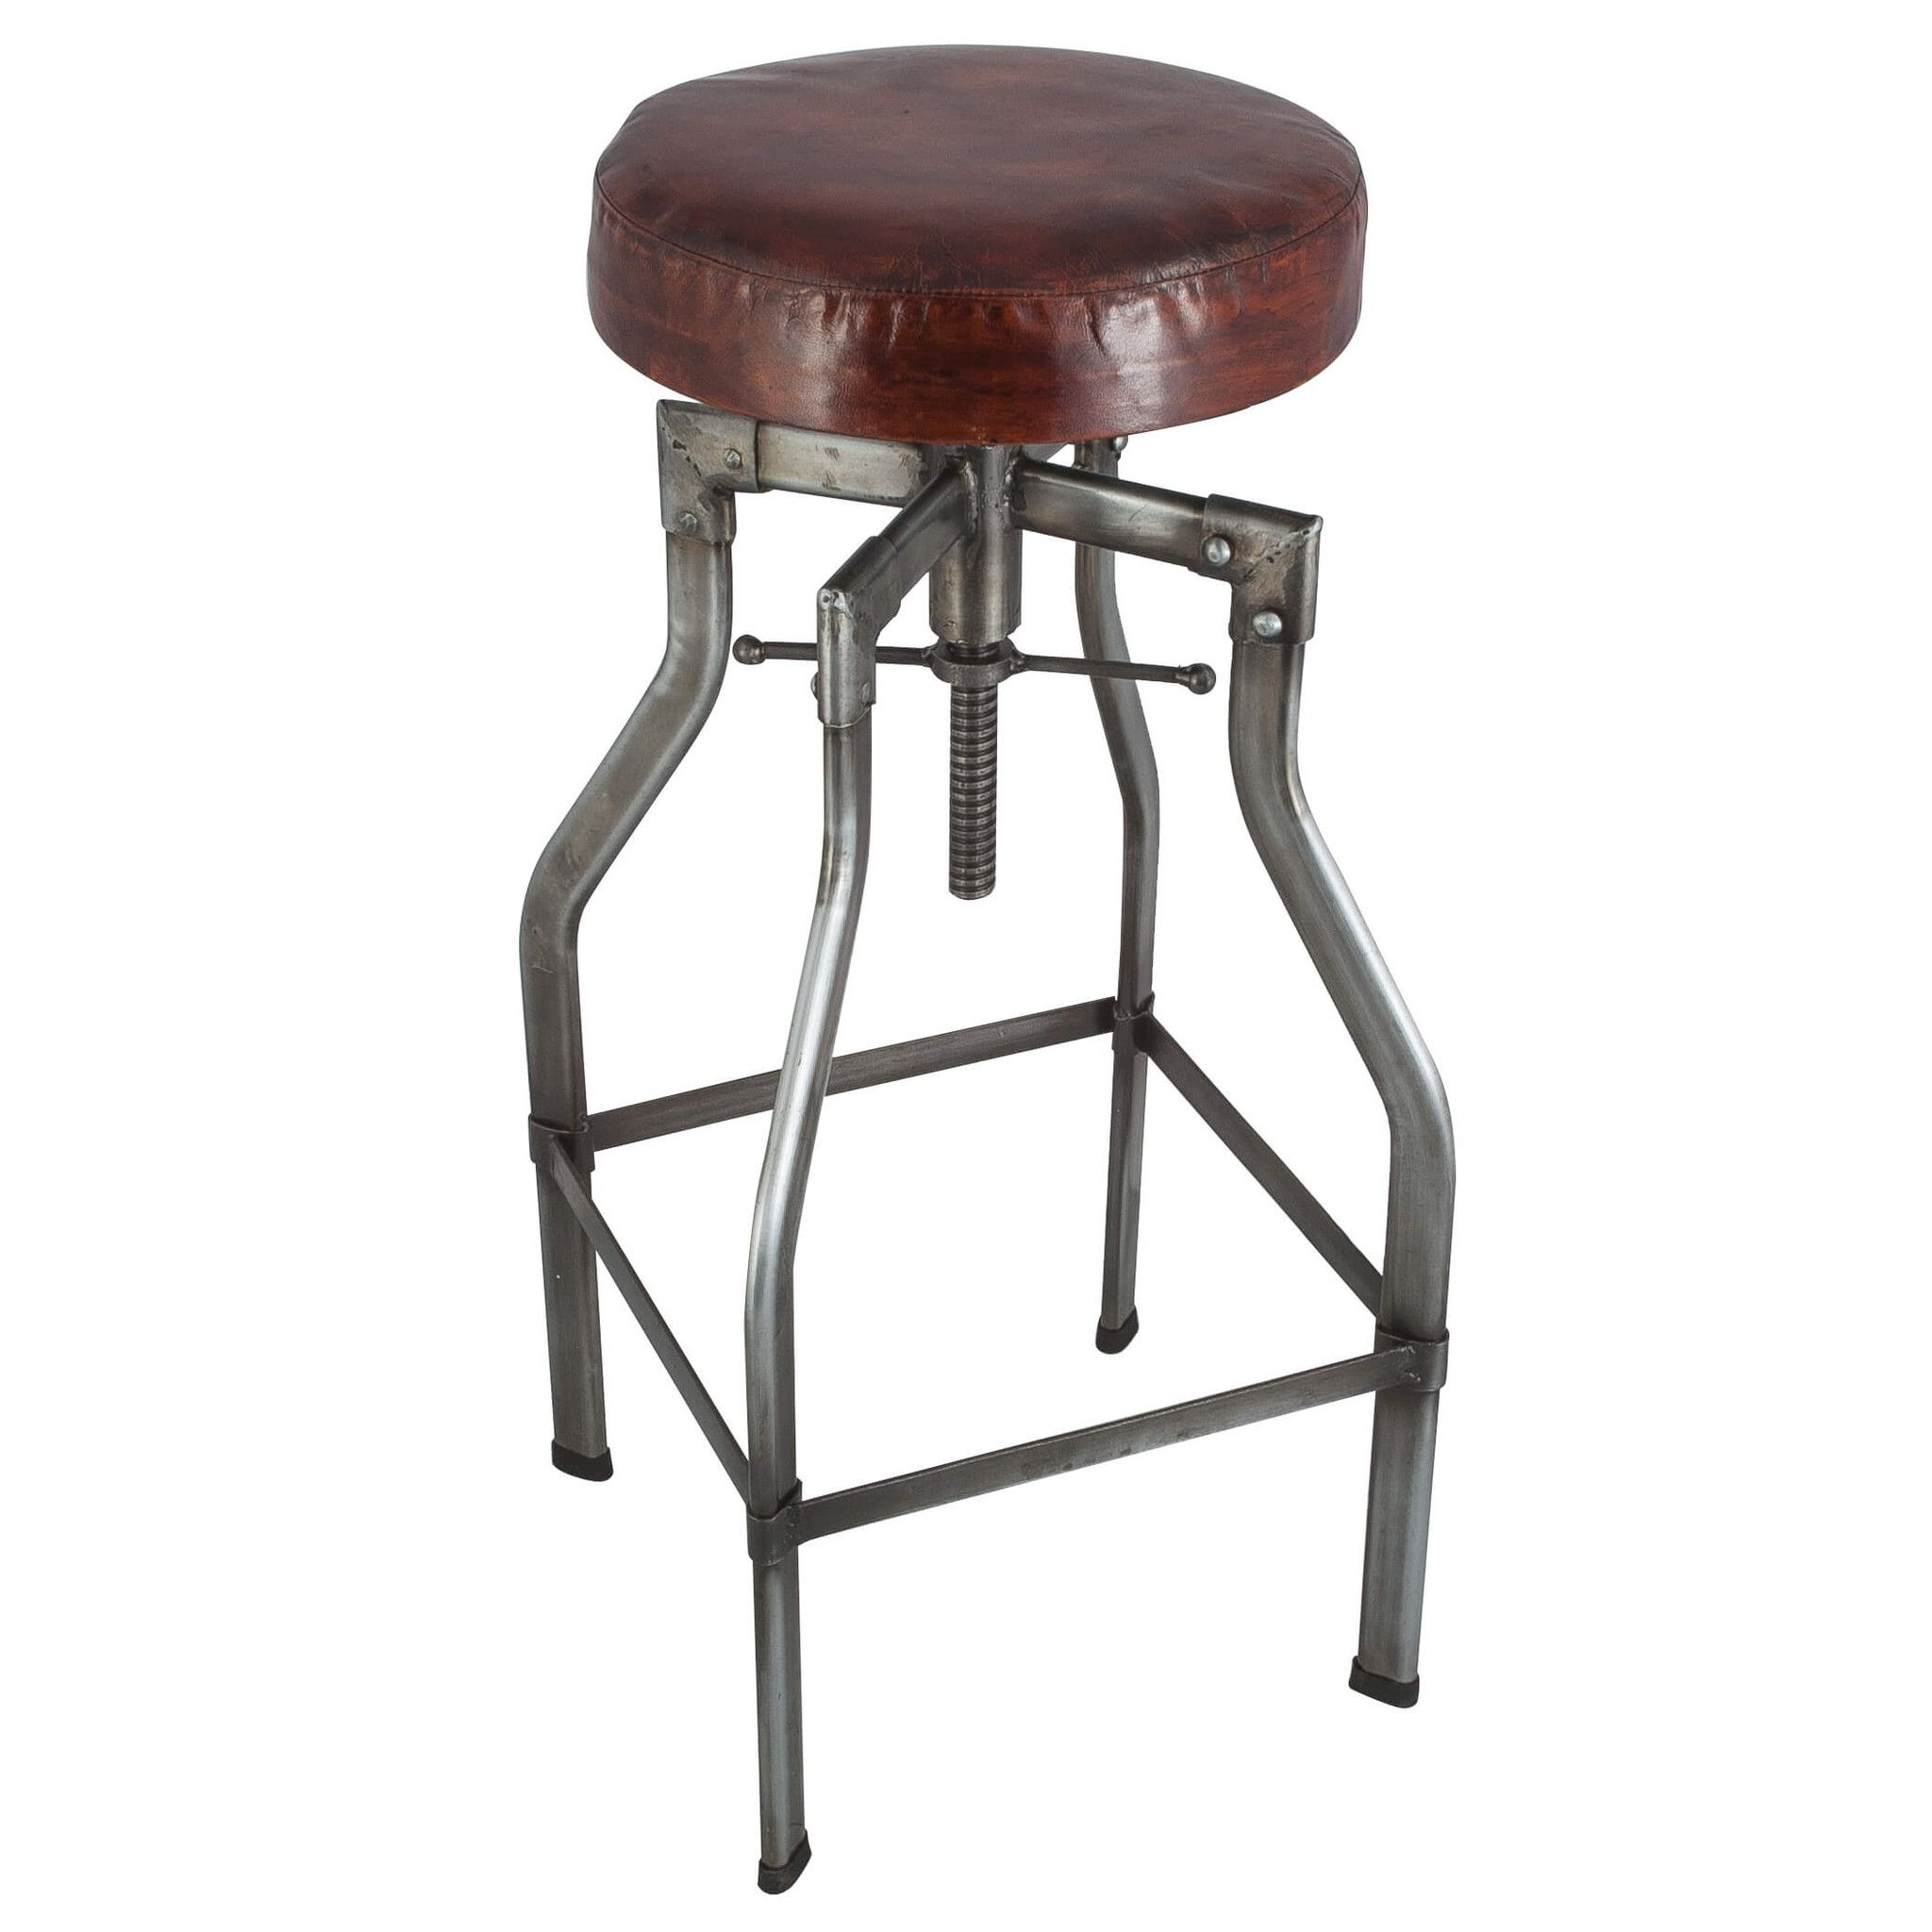 with stools full stool articles seat marshalls tag cushion rectangular size saddle rectangle bar backless